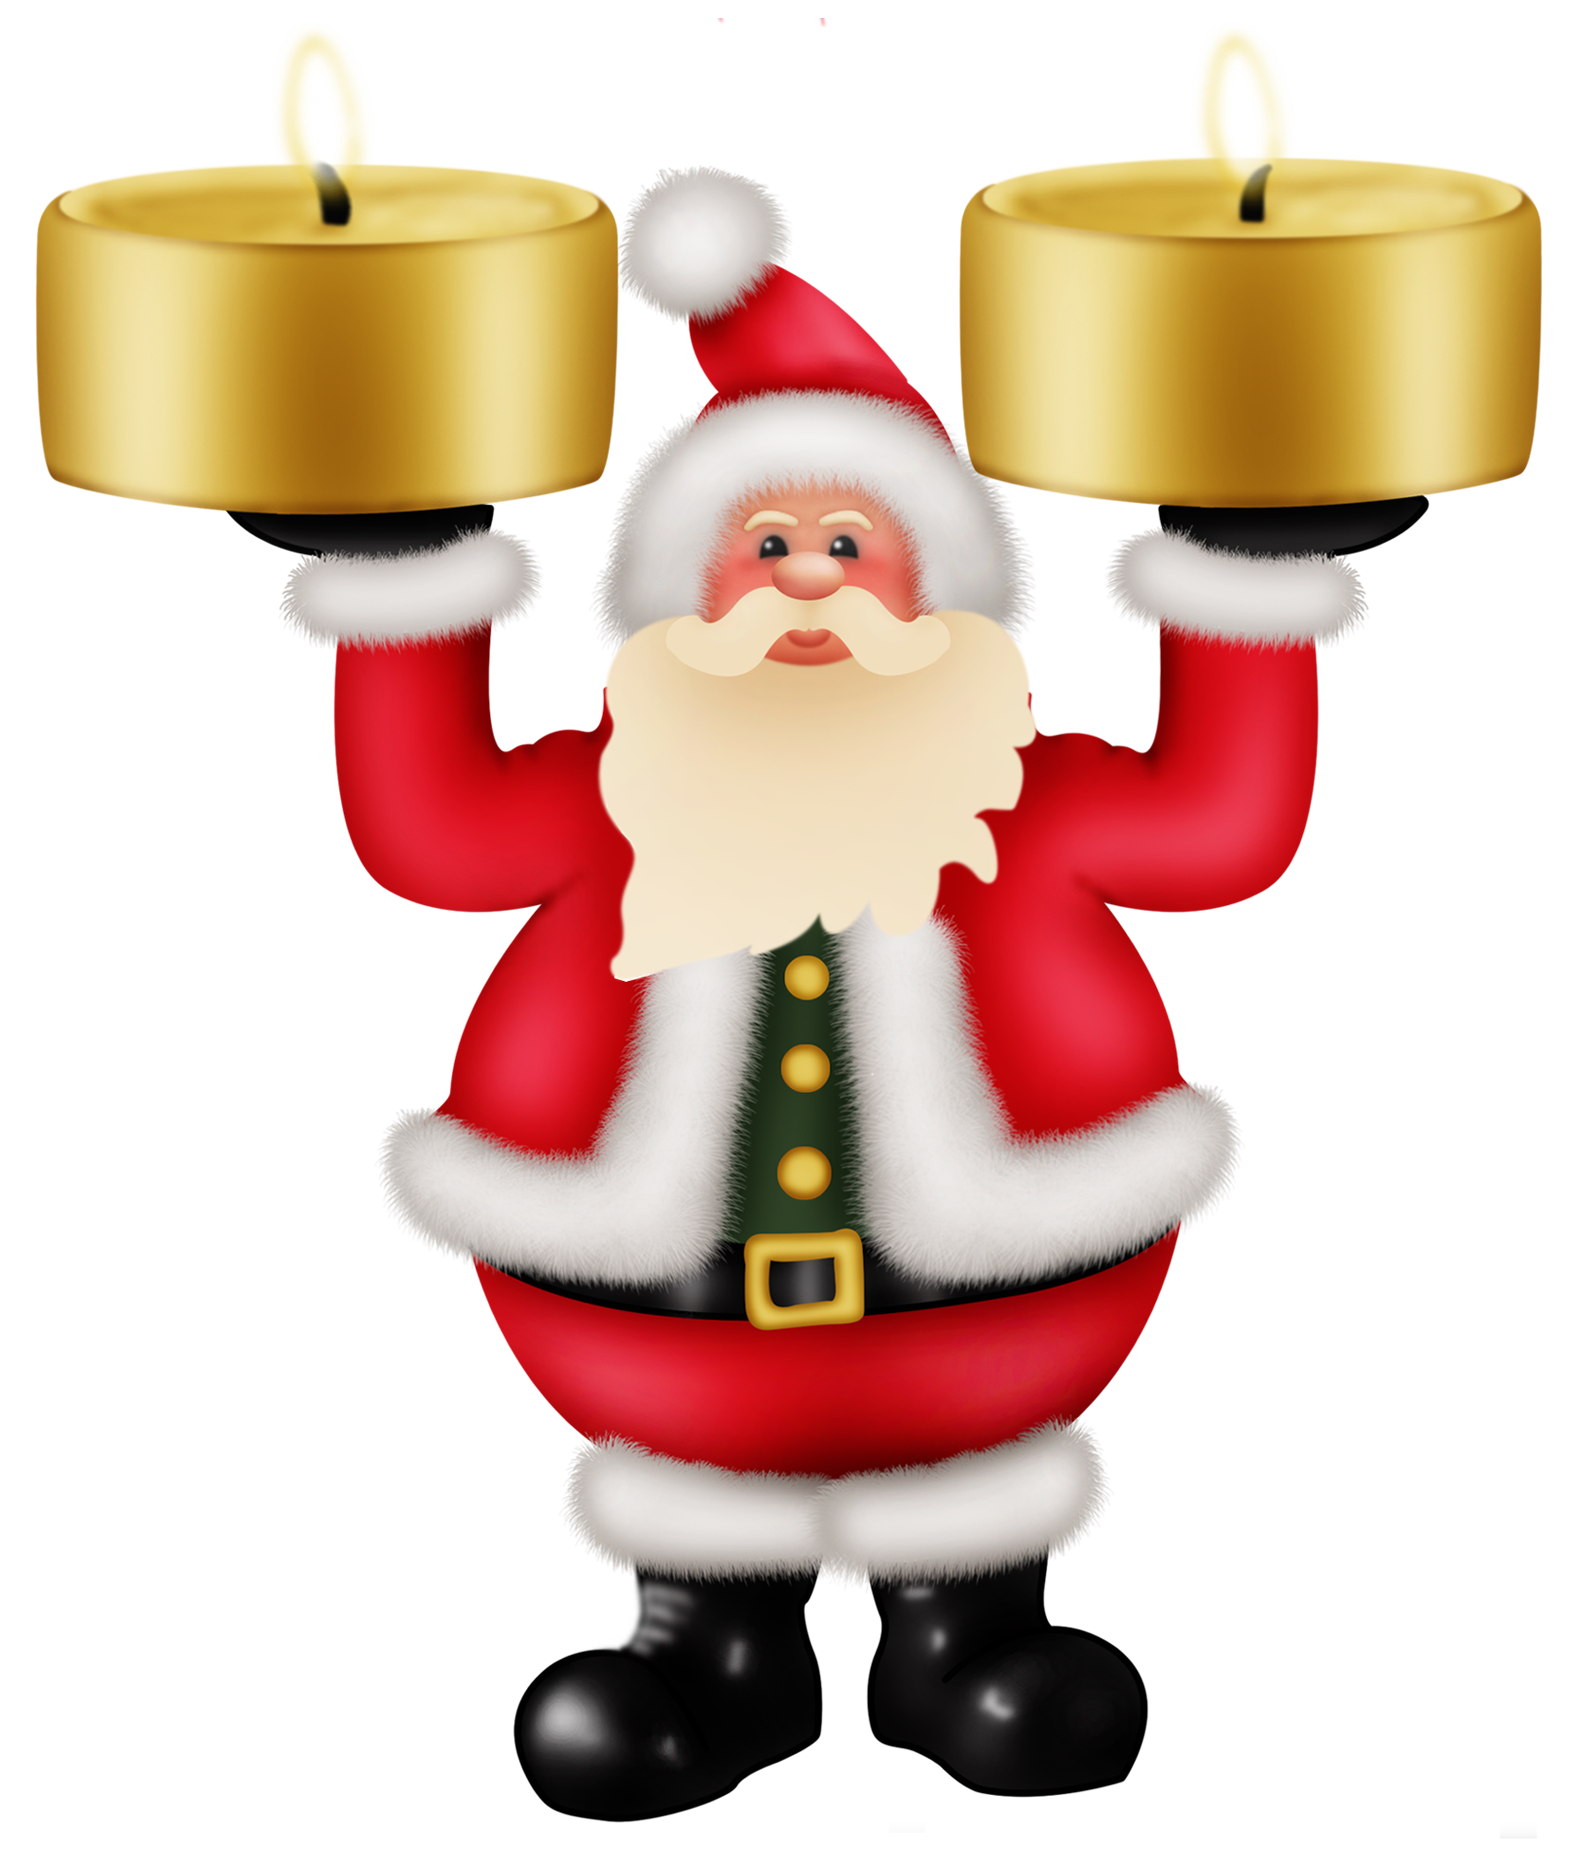 Santa hand free photography png overlay. Claus images download image